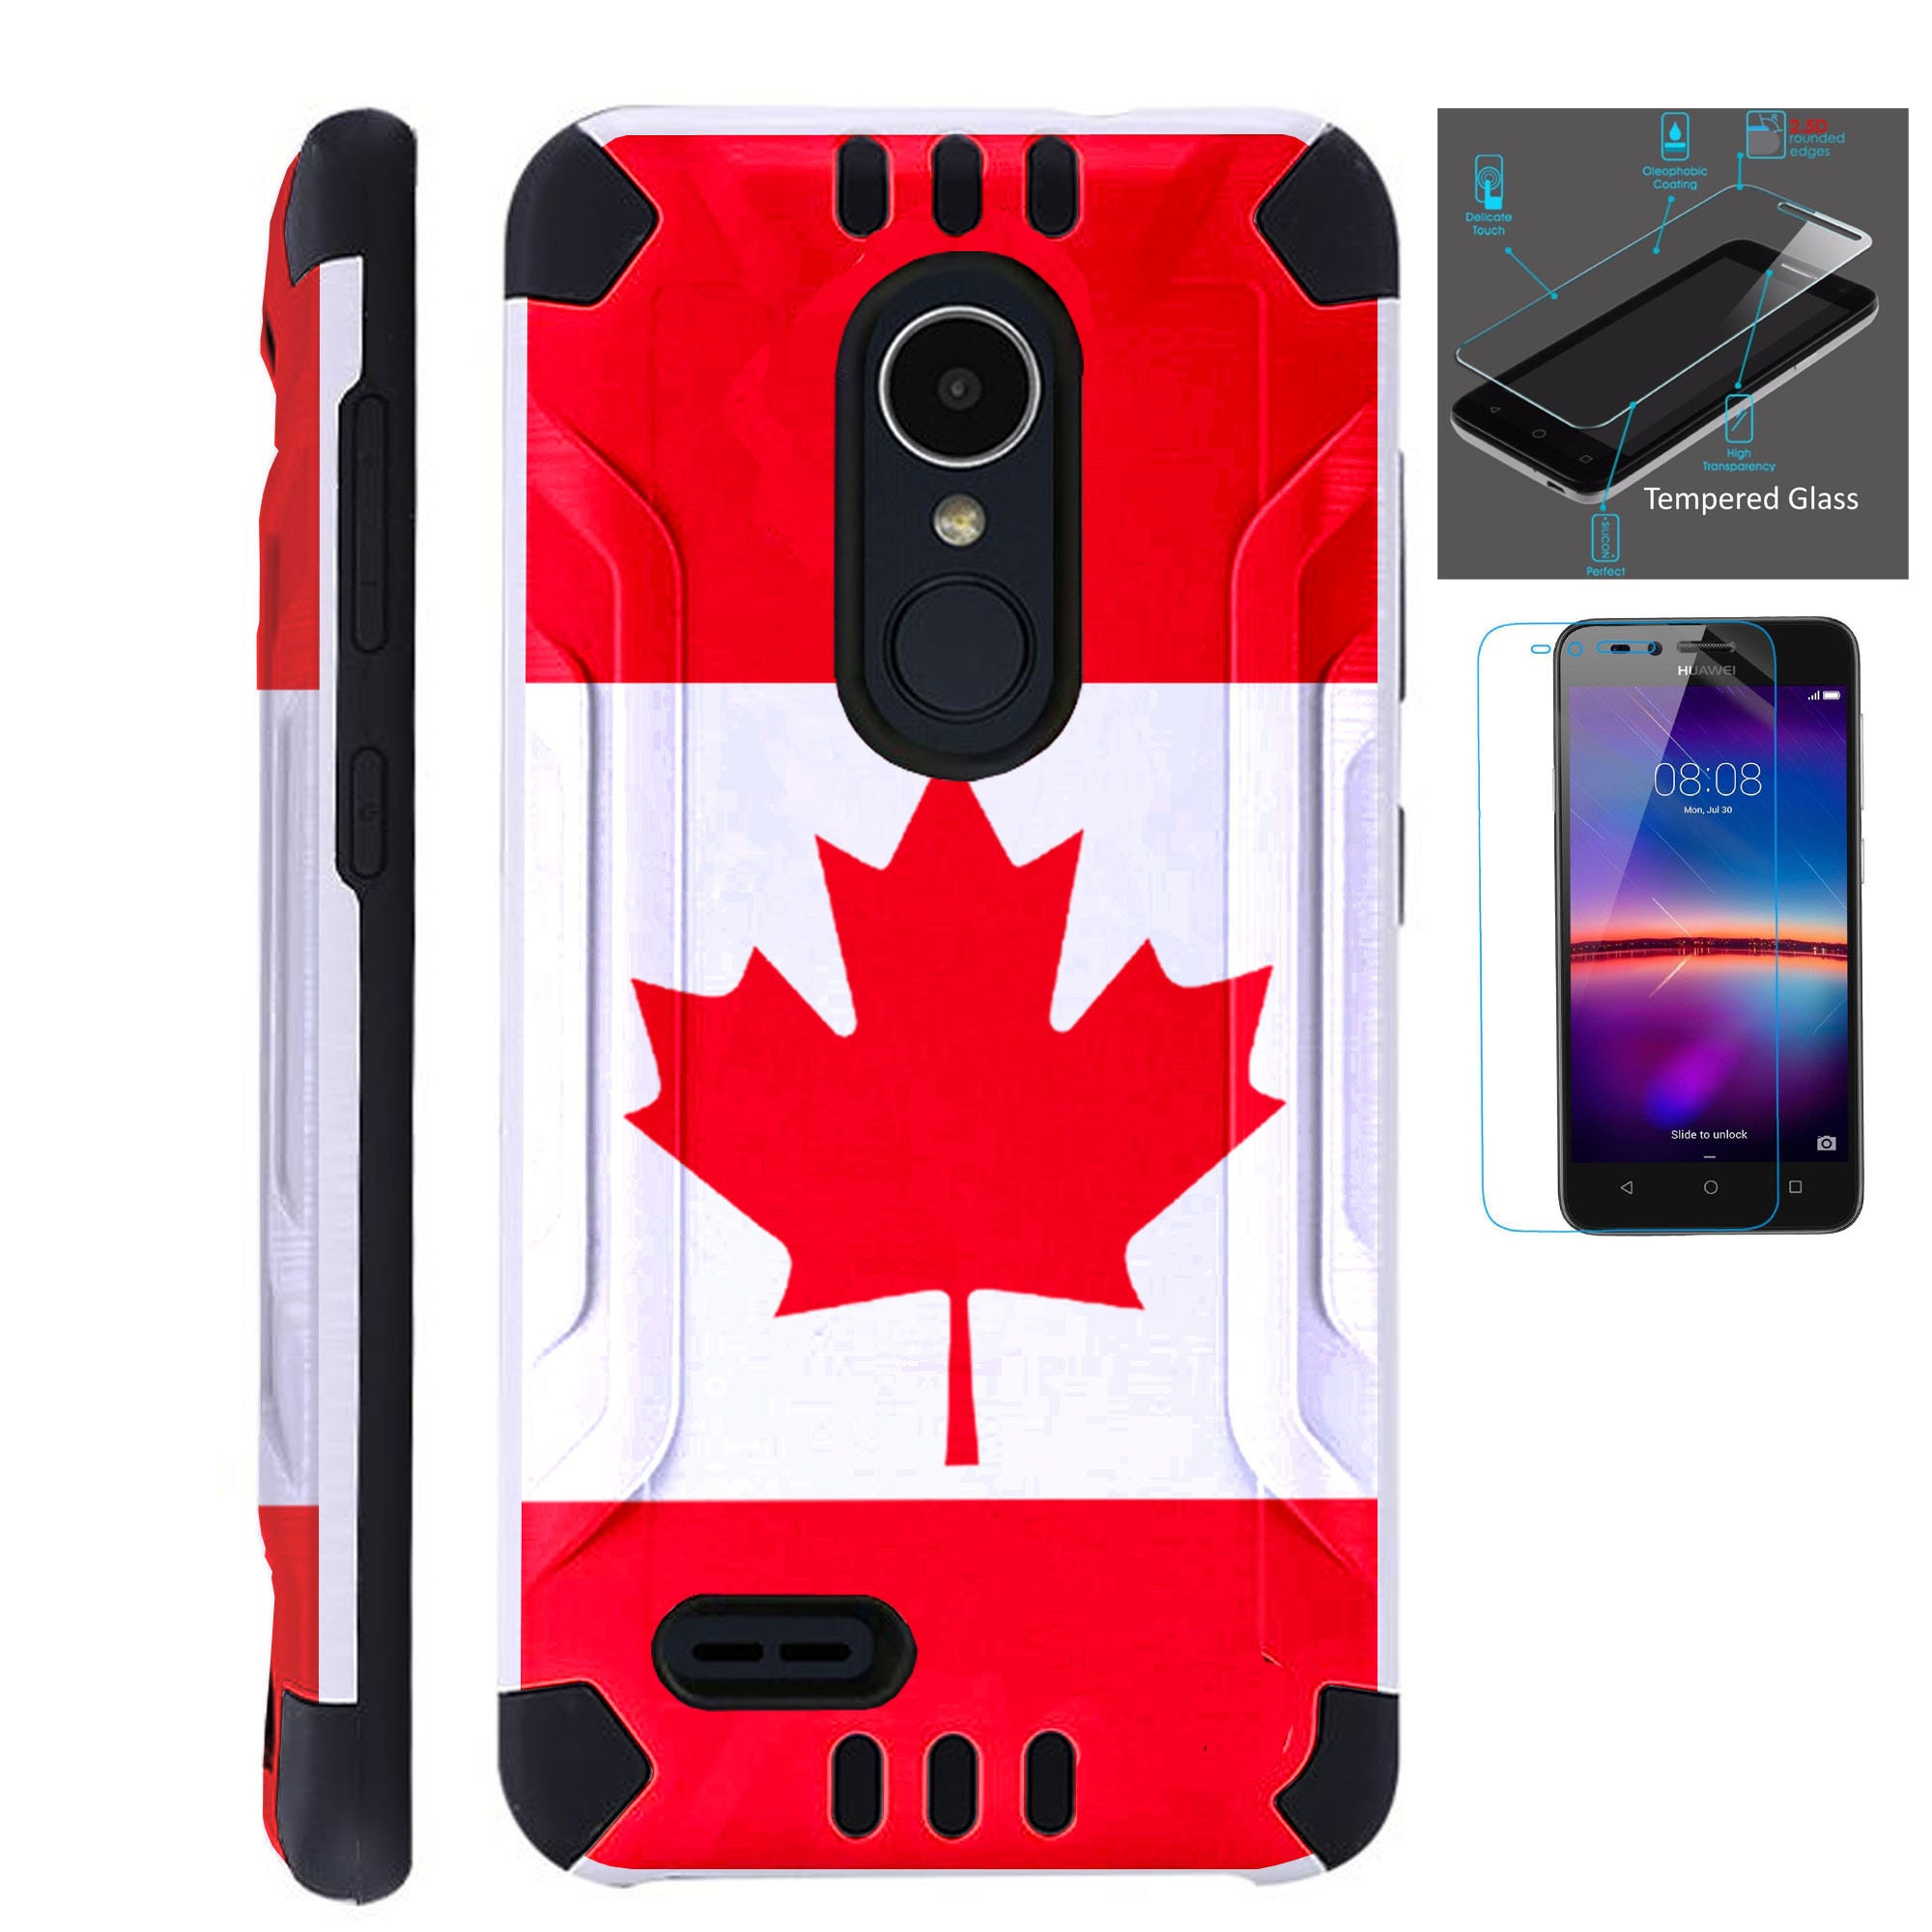 Combat Guard + Tempered Glass For Lg Stylo 3 4 Plus Fiesta 2 Lte Aristo 2  K30 Hybrid Dual Layer Armor Cover Slim Case CANADIAN FLAG